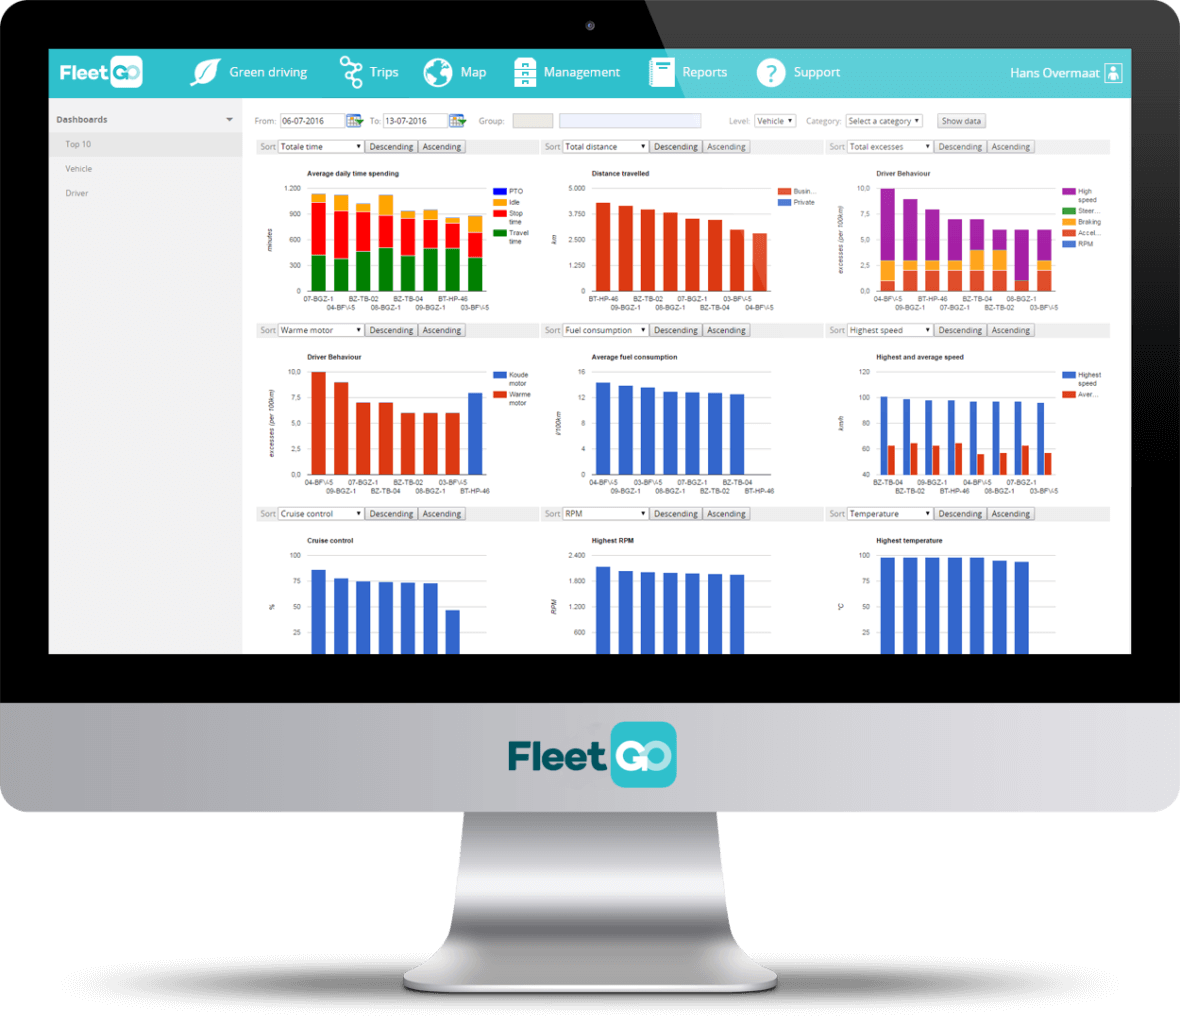 FleetGO Flådestyring Software Dashboards